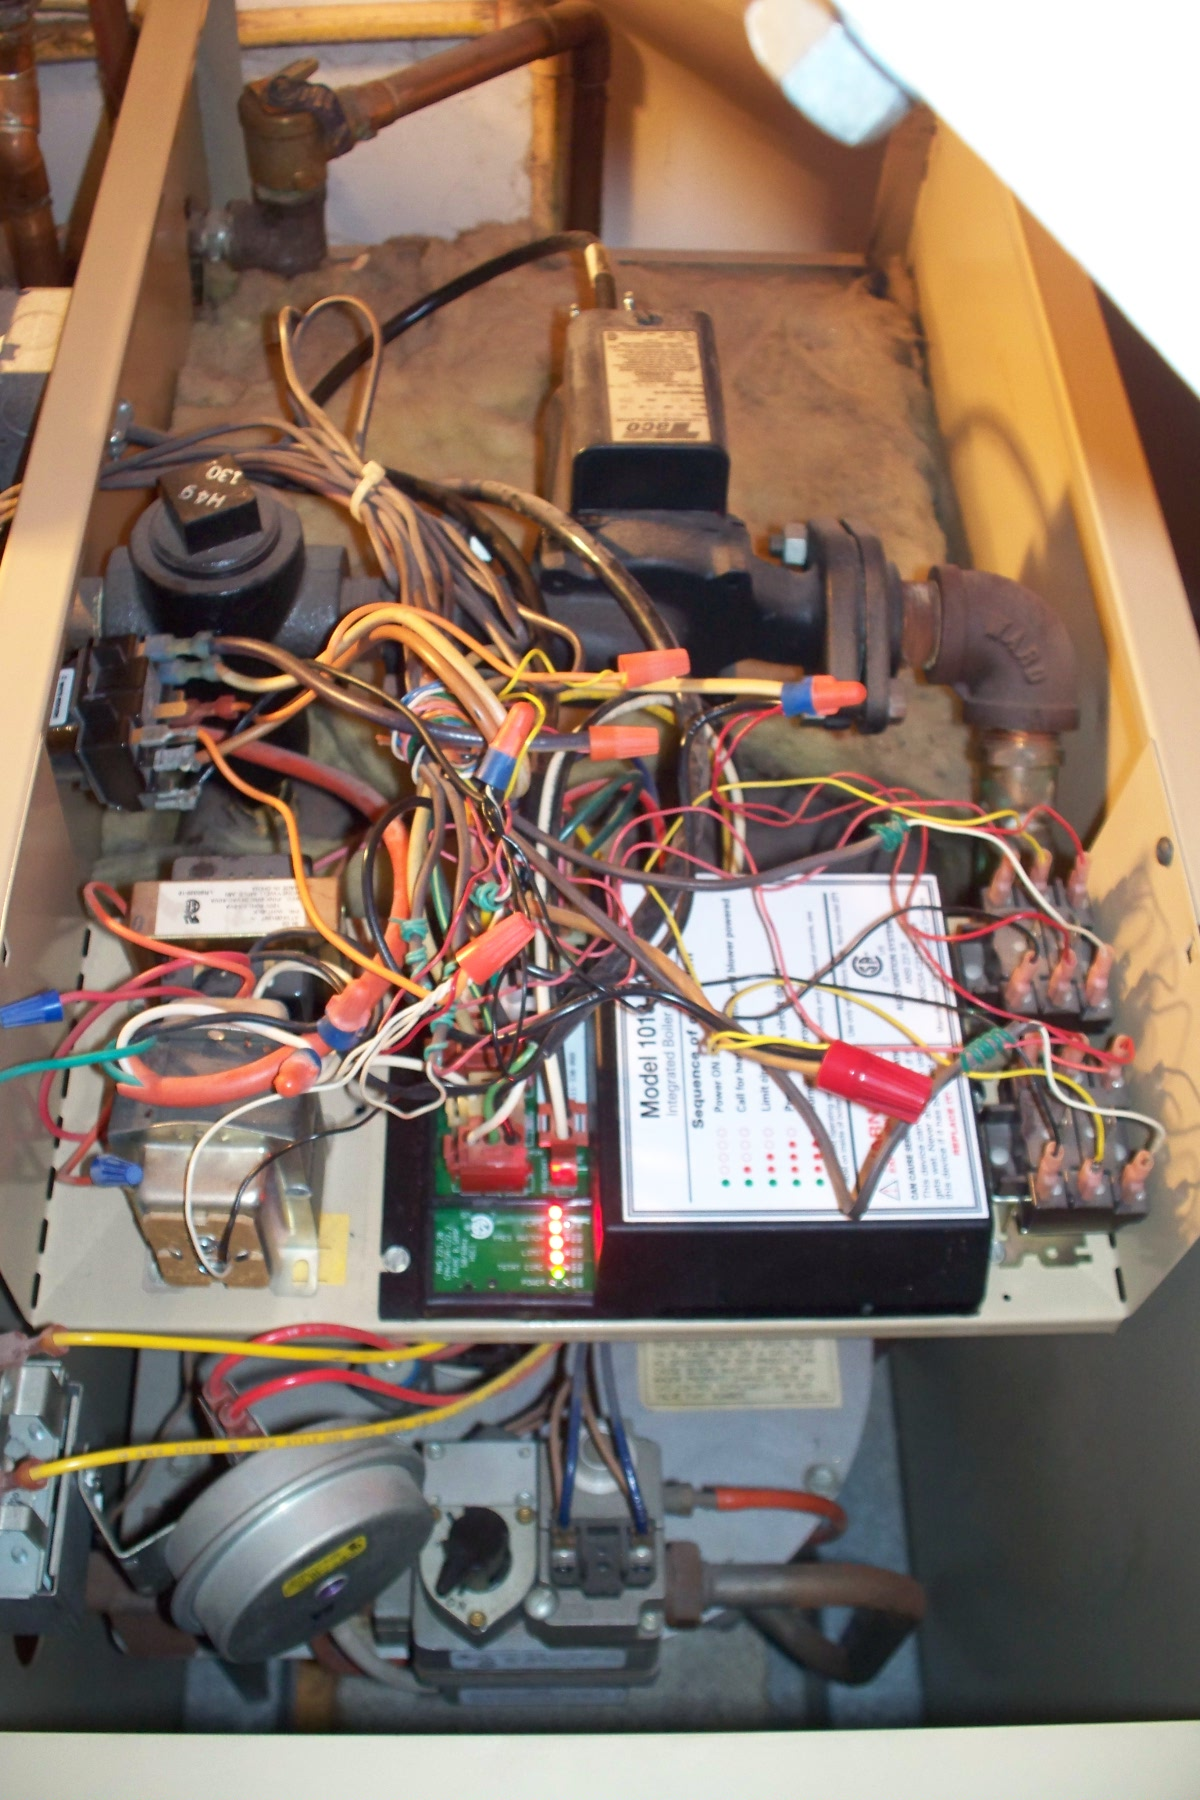 I Have A Weil Mclain Gv 5 Series 2 Boiler With An Amtrol Boilermate Schematic Diagram Is There Relatively Easy Way Of Testing For Faulty Relay Using The Voltmeter